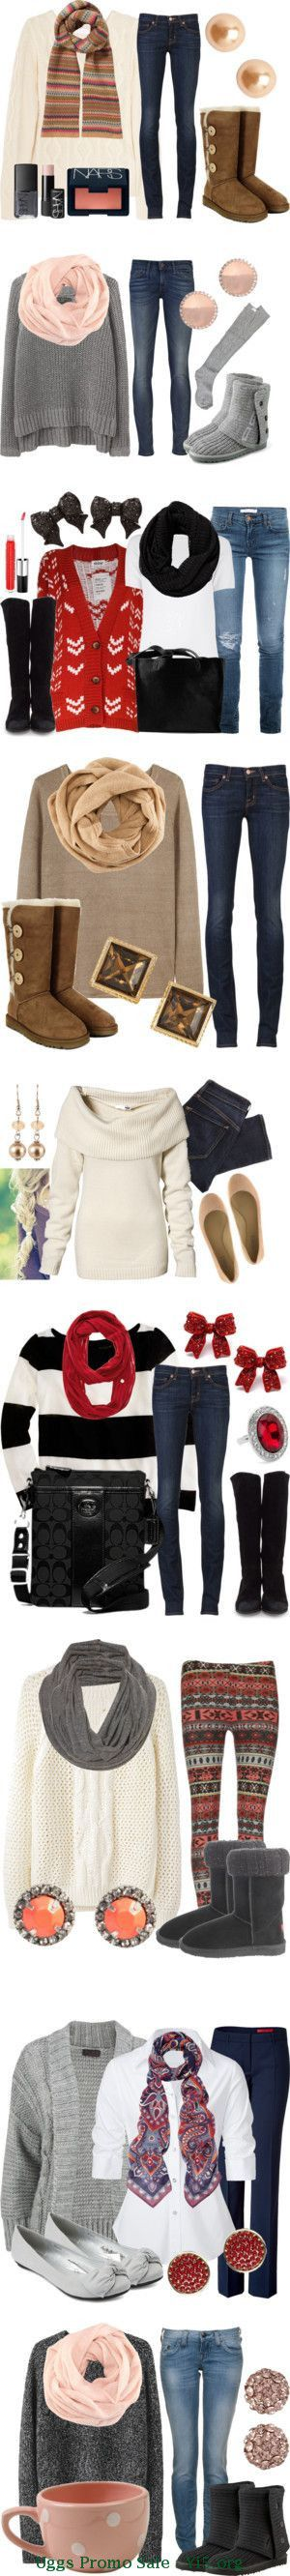 These outfits are so cute! They all look so cozy. Cyber Monday Ugg Boots